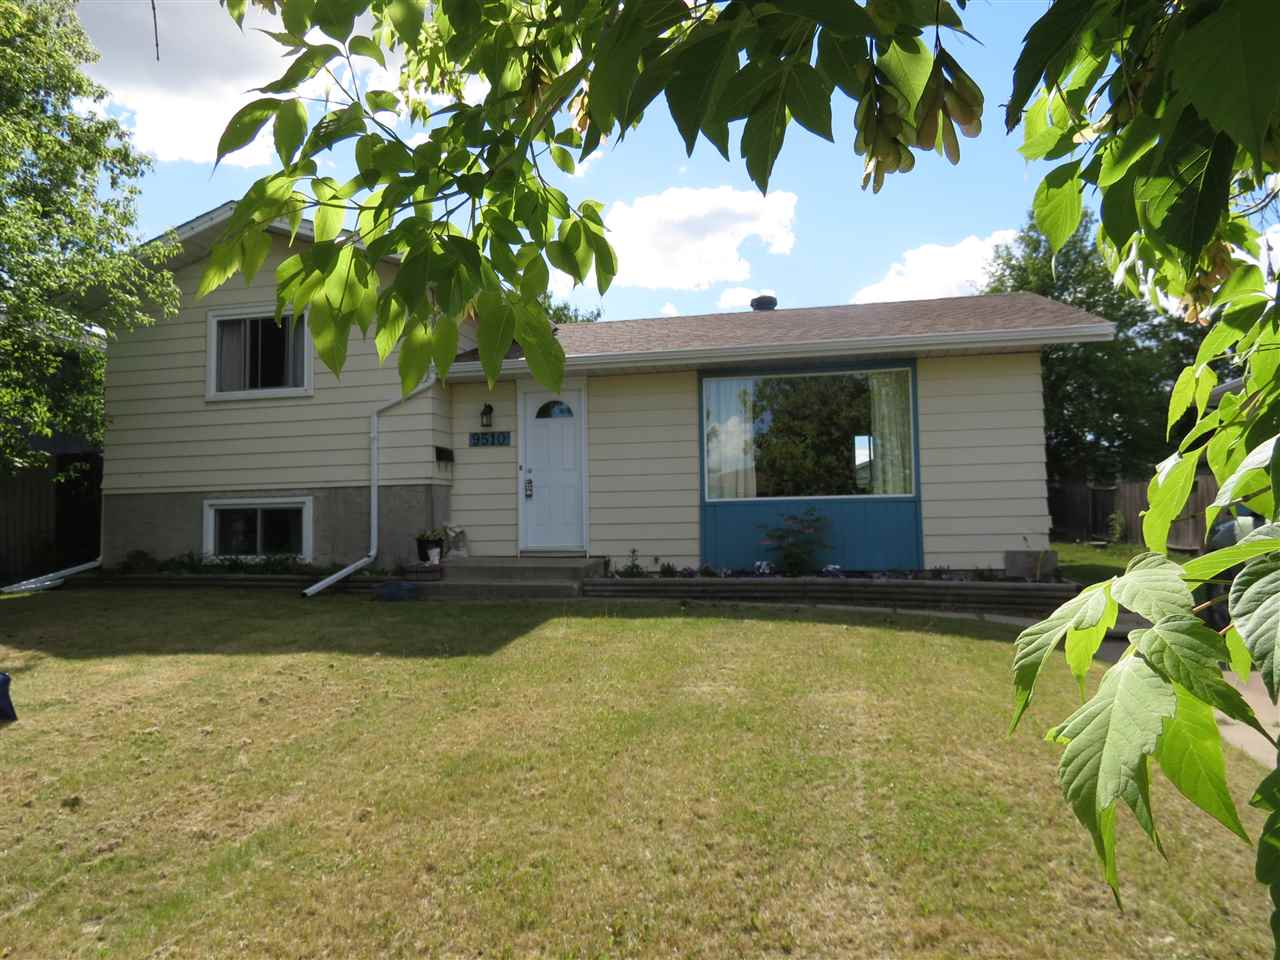 Main Photo: 9510 97 Street: Morinville House for sale : MLS(r) # E4067875